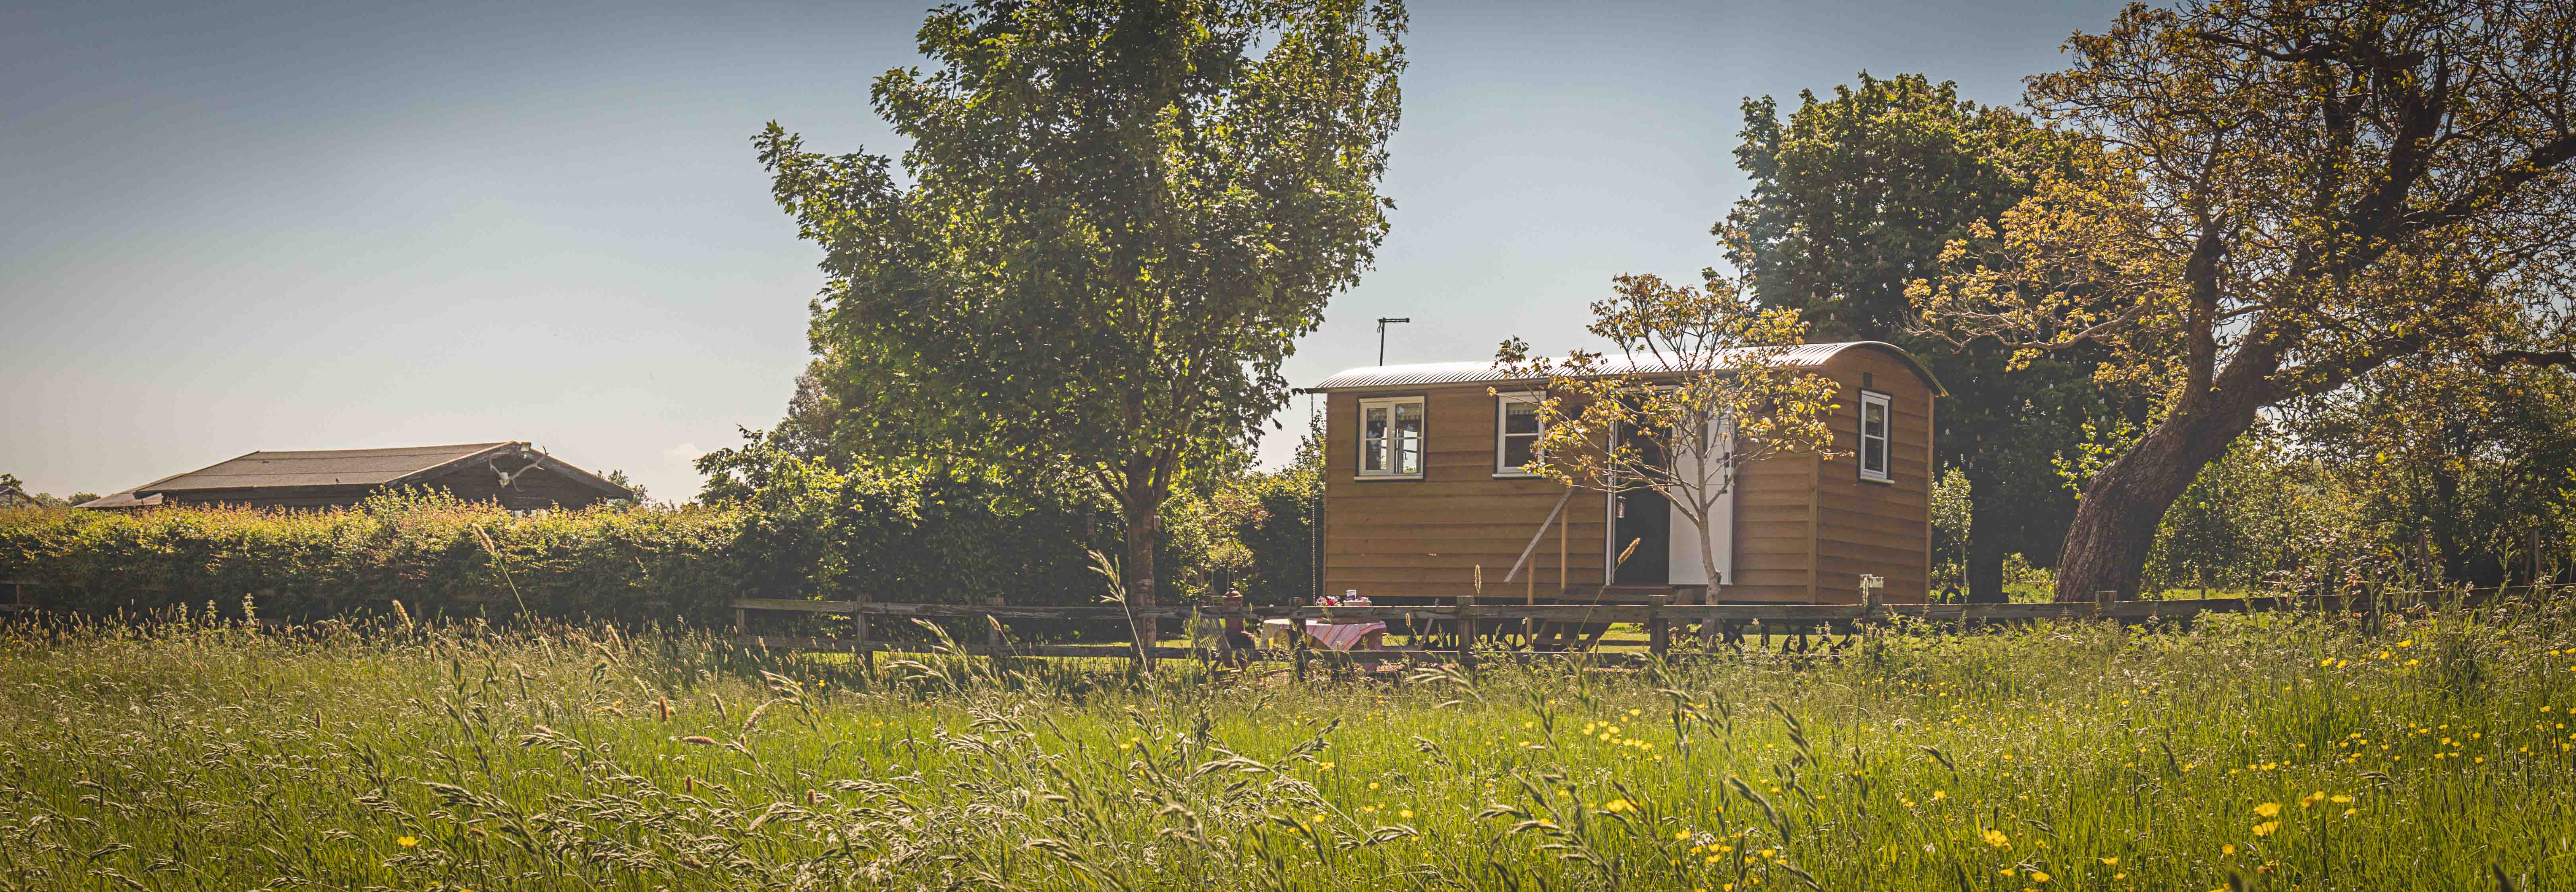 Avenue Farmhouse Shepherds Hut (3)